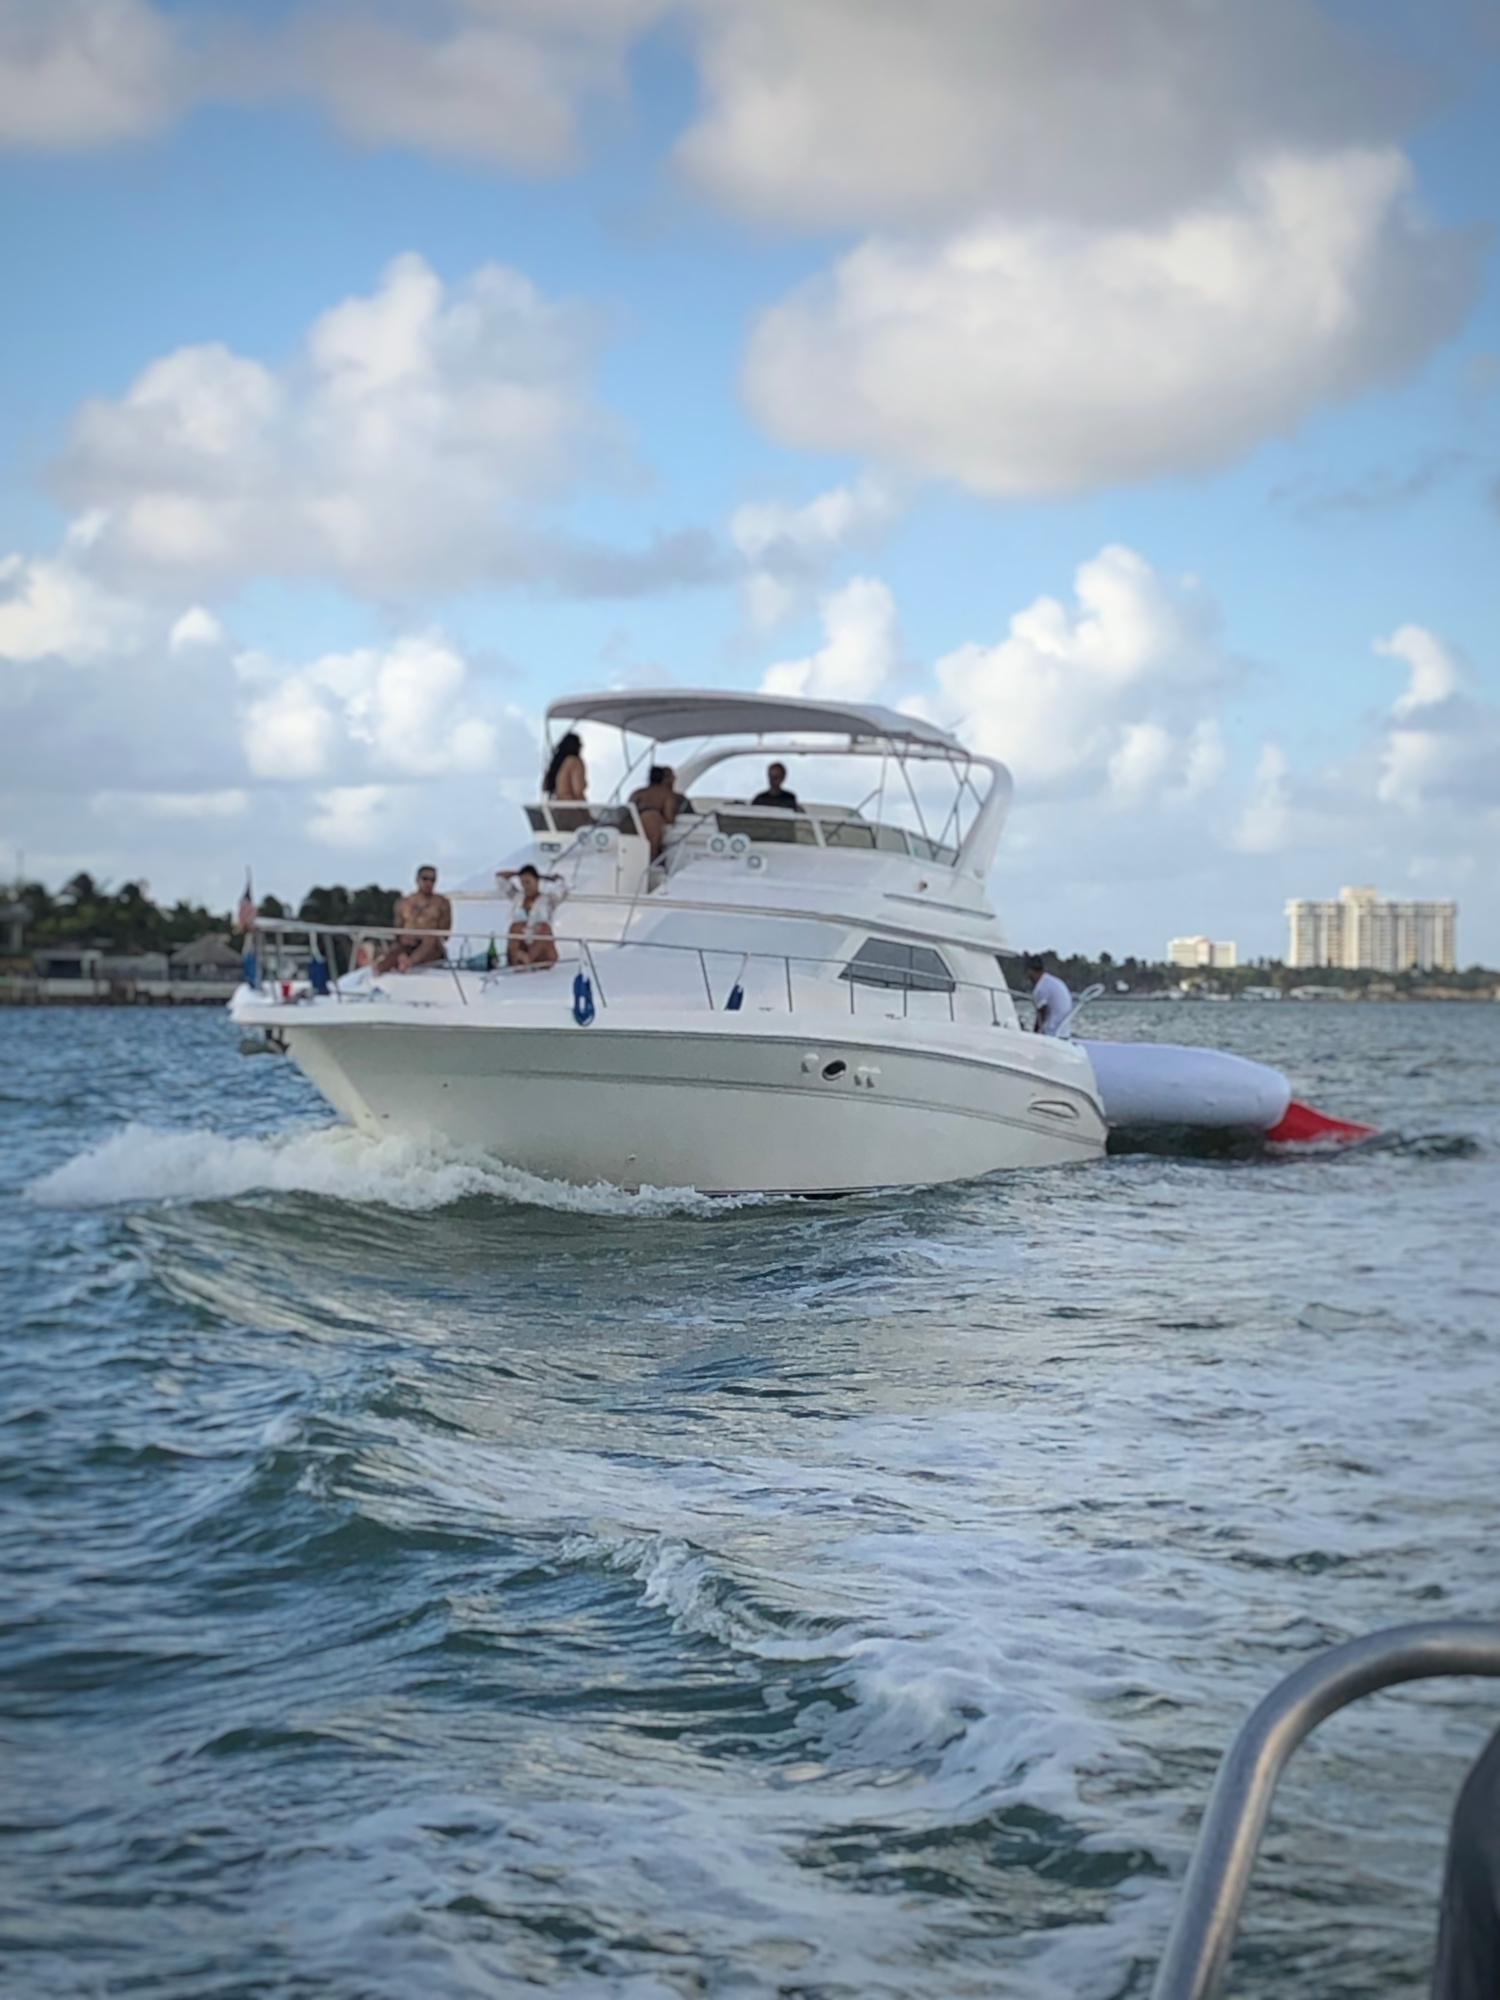 Coast Guard halts illegal charter operation in Biscayne Bay